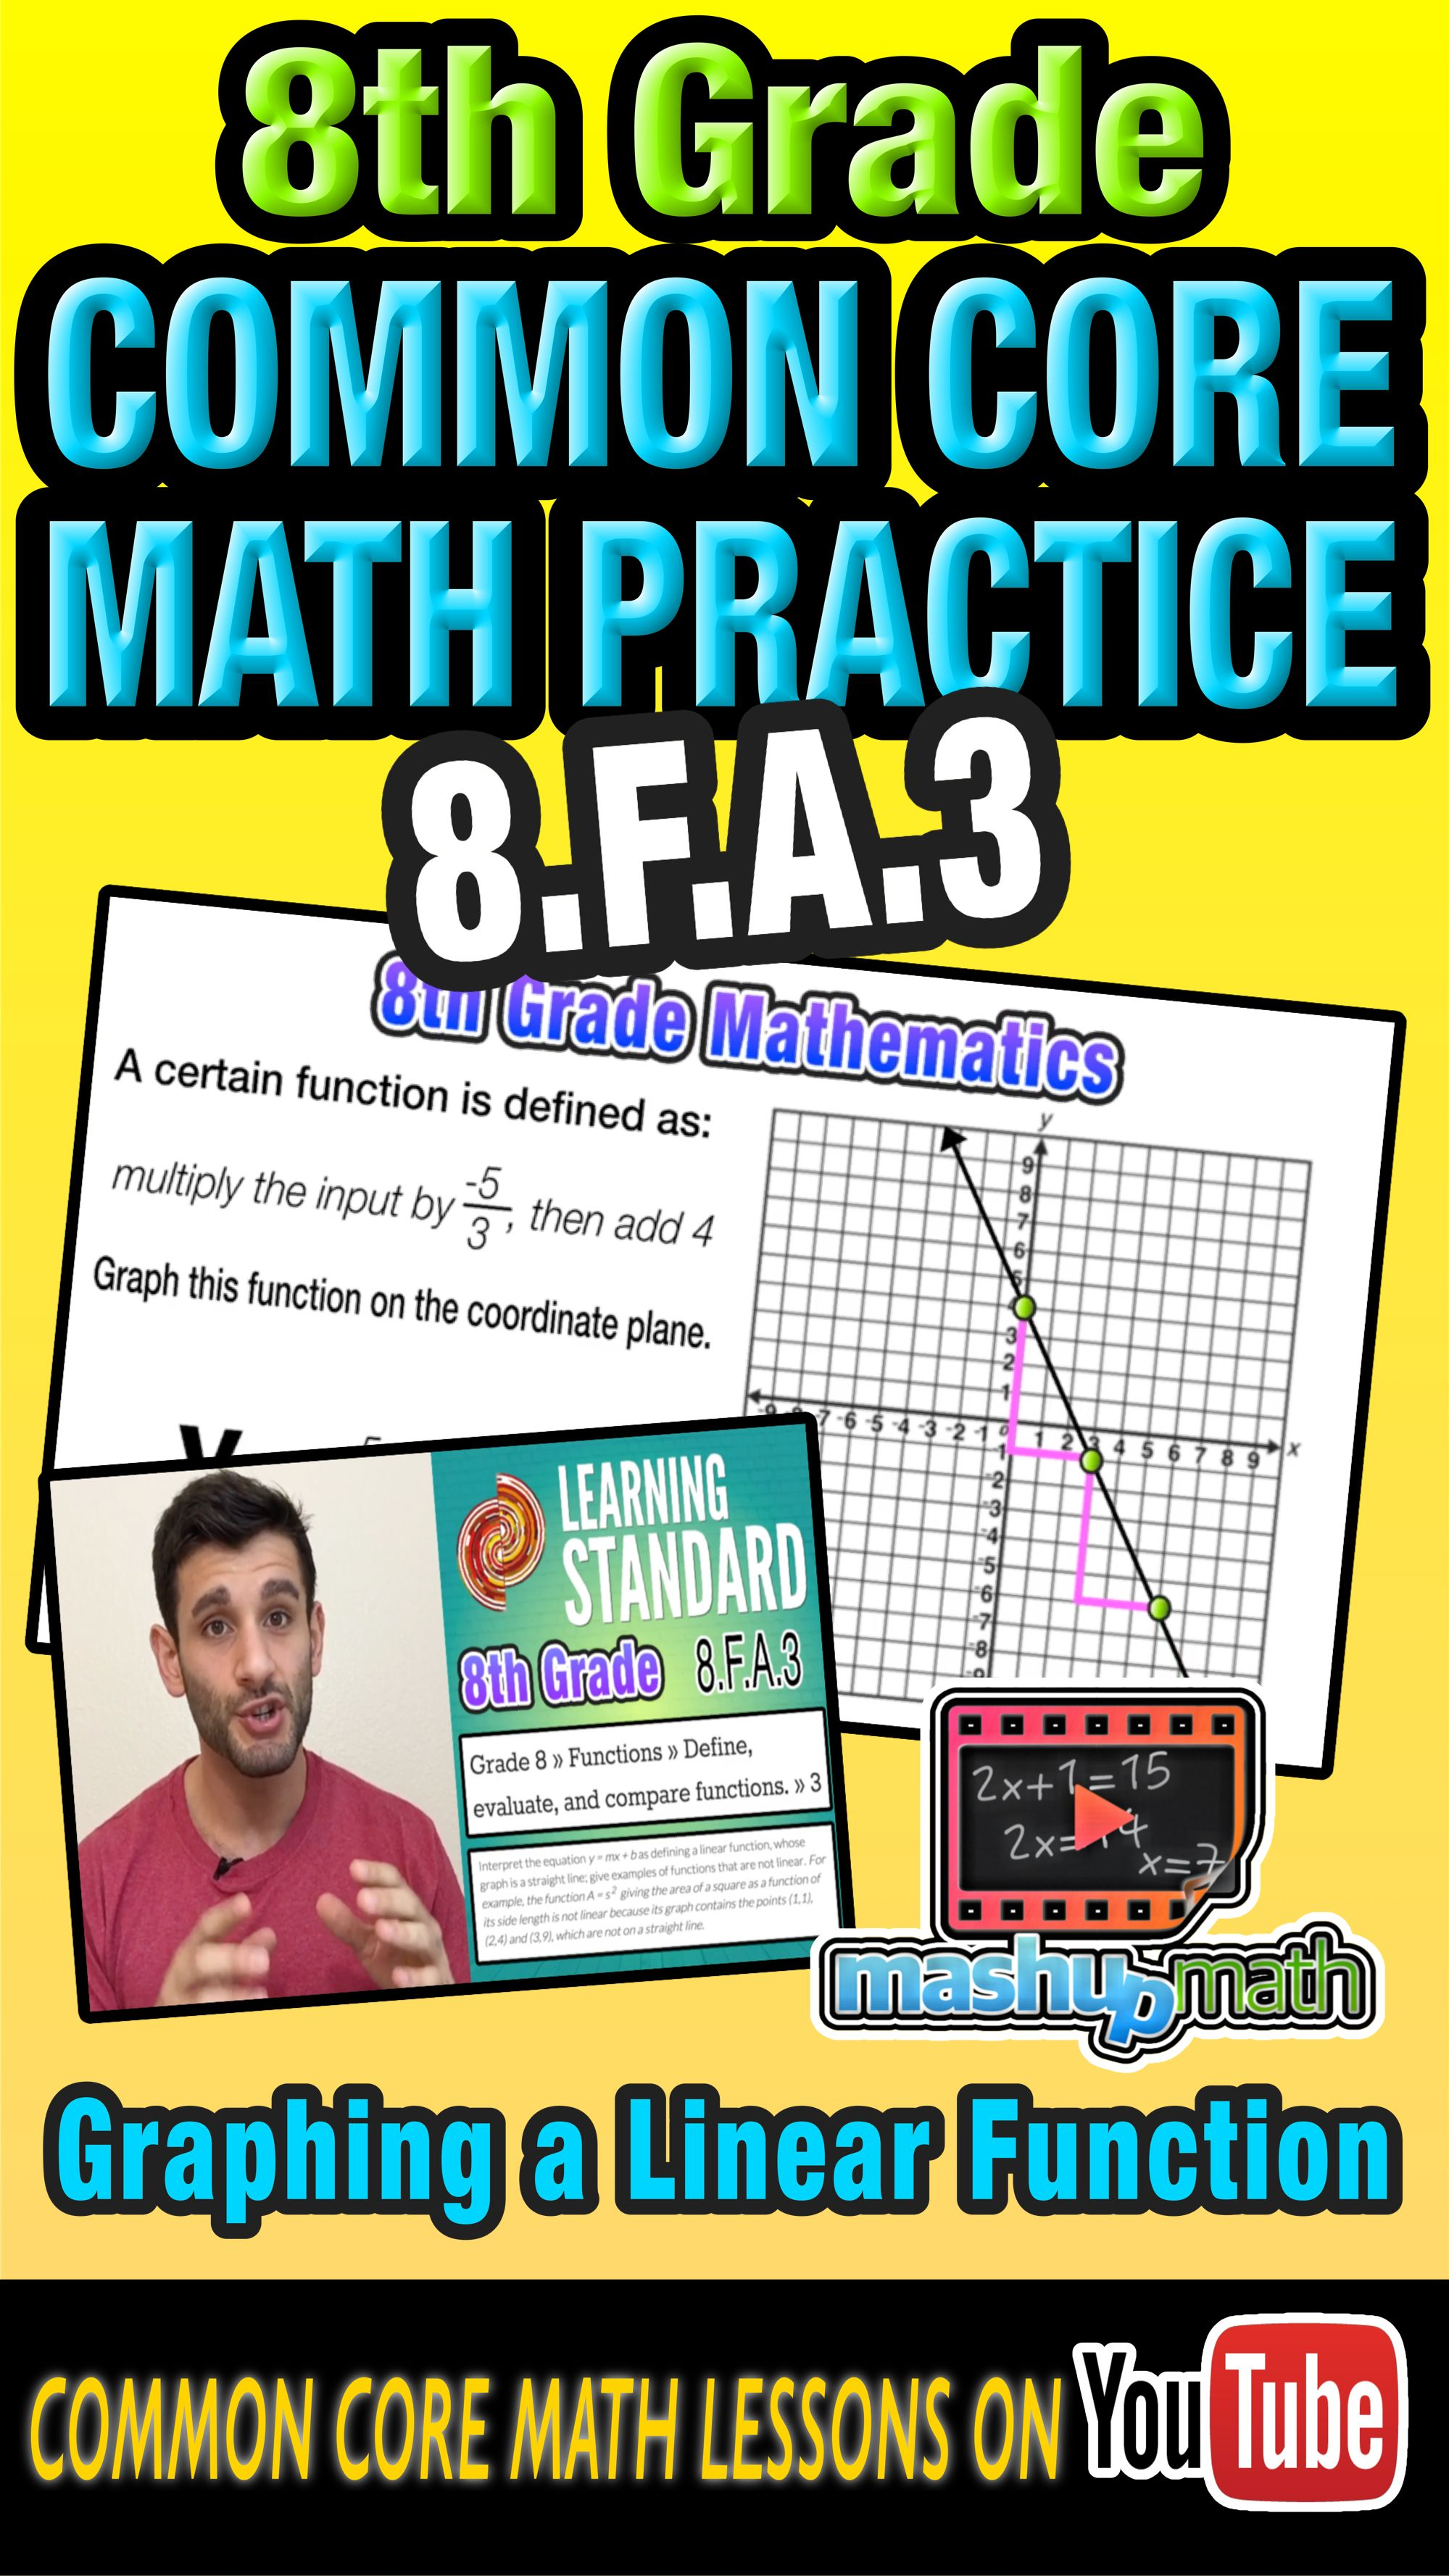 Need Some Help With 8th Grade Common Core Math Check Out Our Short Animated Lesson On Graphing